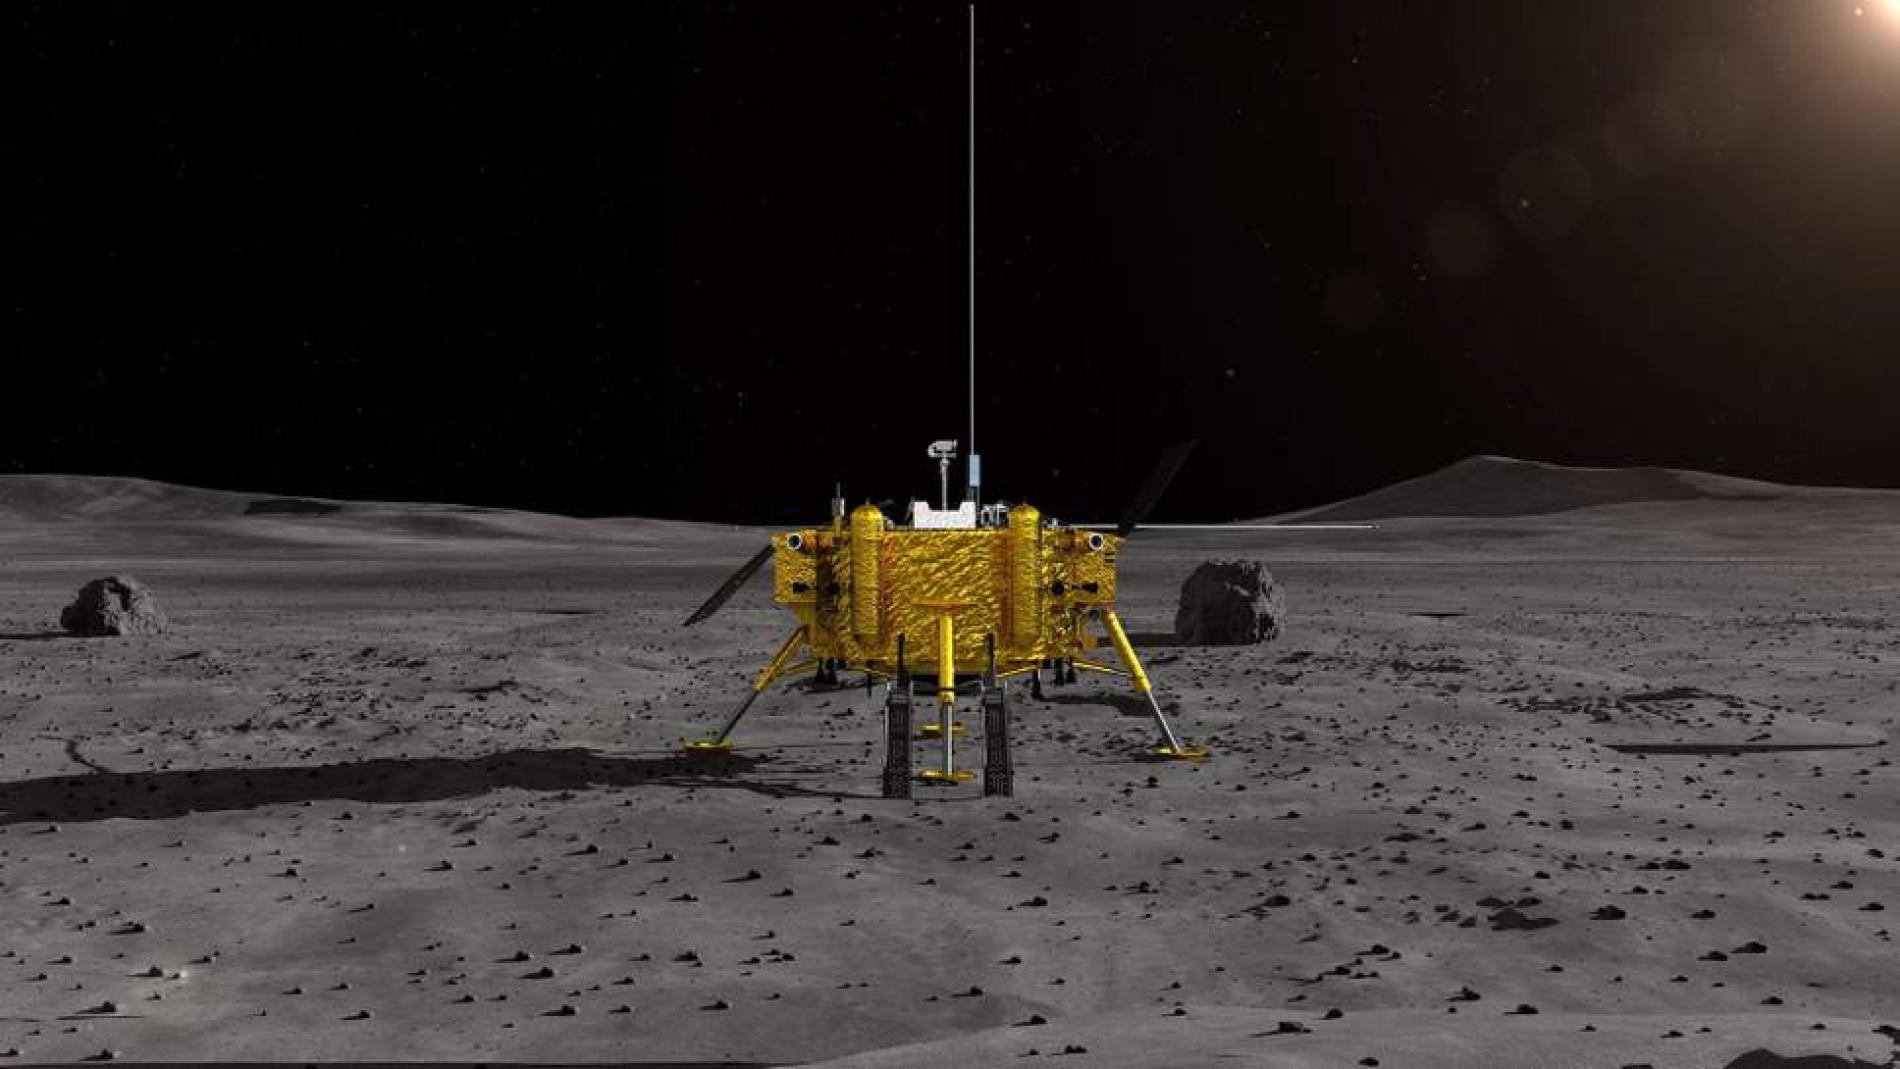 Photo by the Lunar Exploration and Space Engineering Center of China National Space Administration (CNSA)